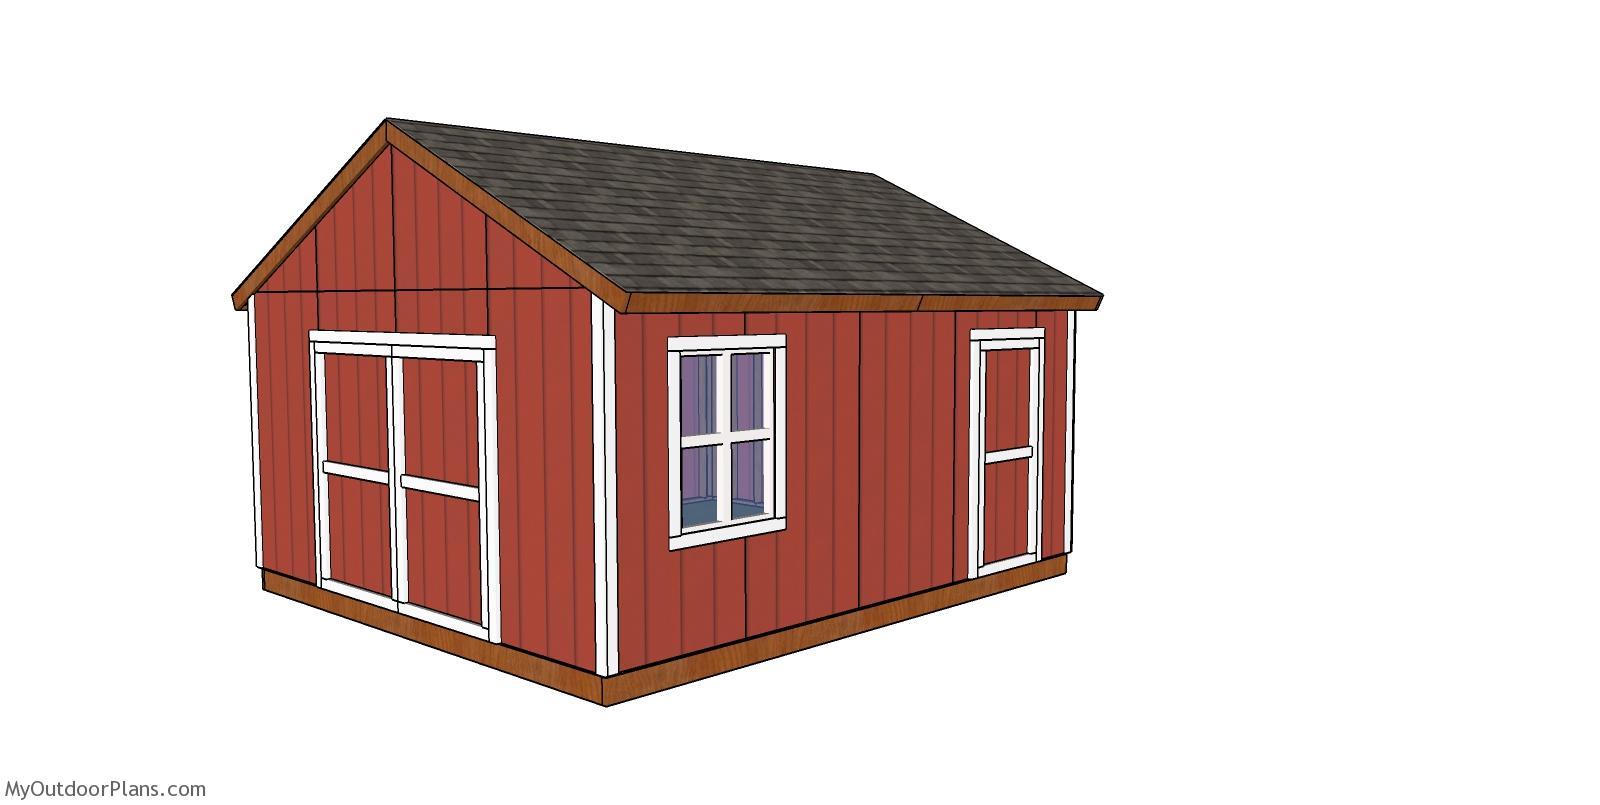 16x18 Gable Shed Plans - Free PDF Download